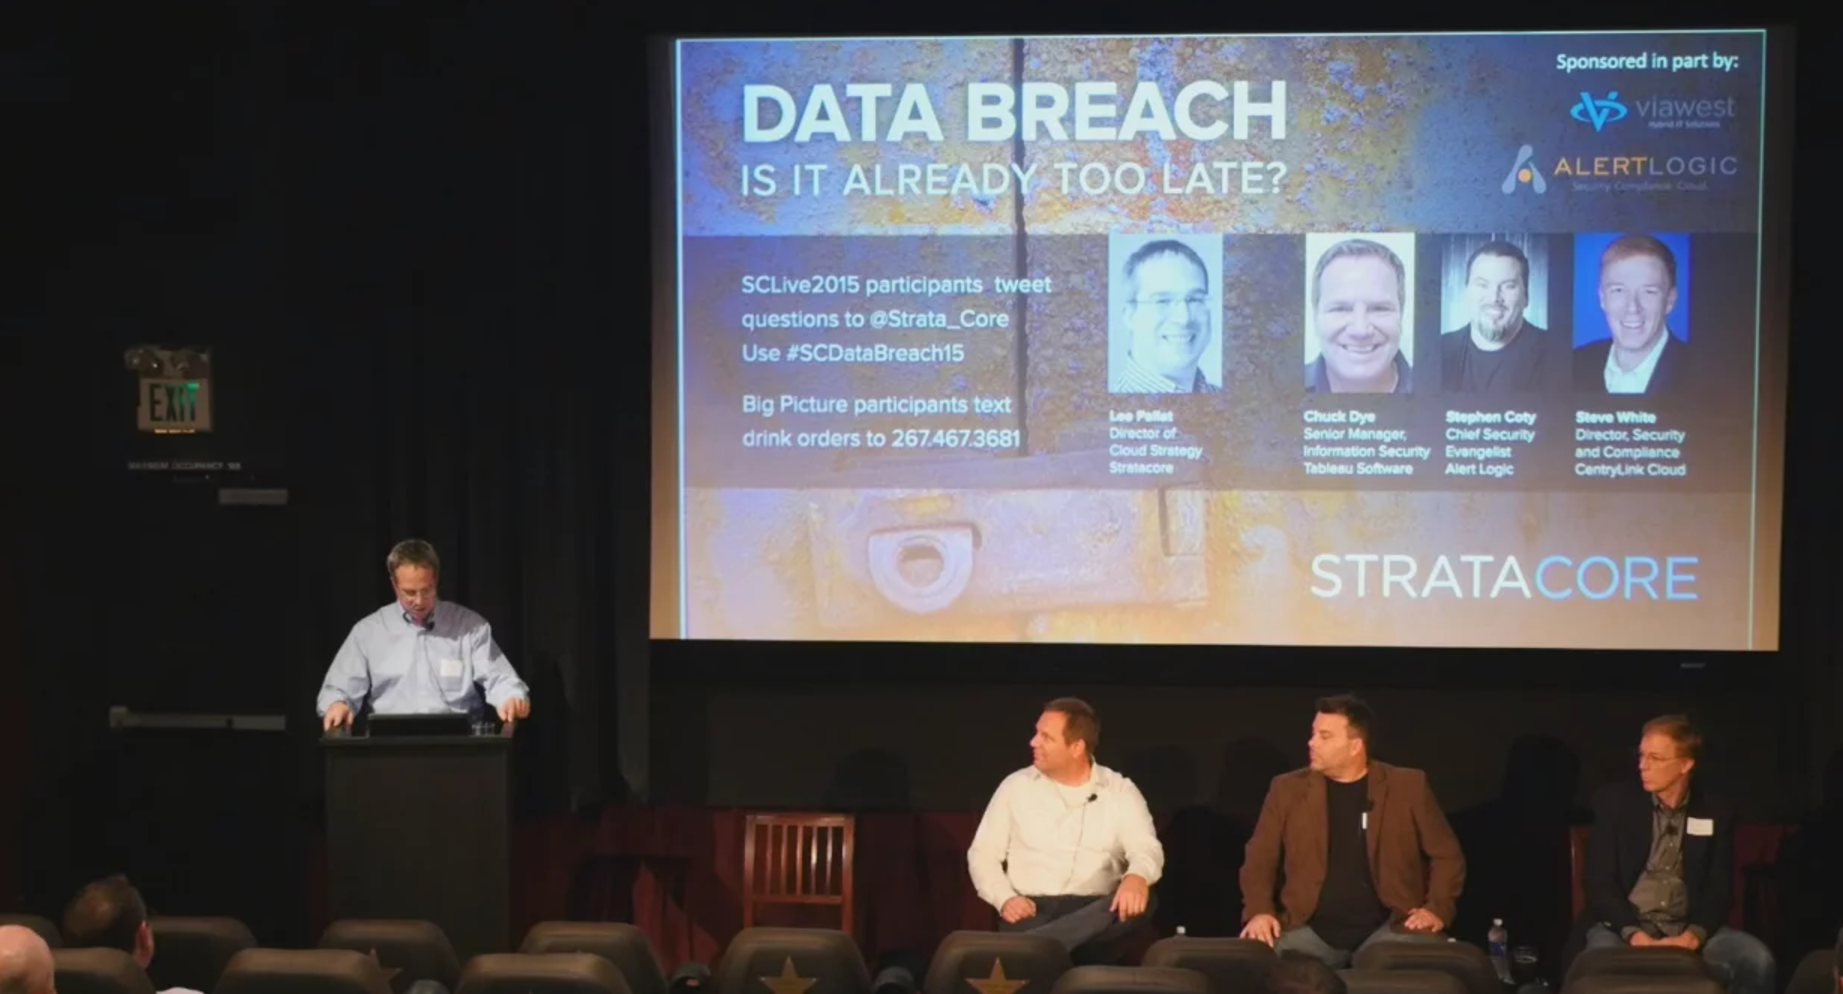 Data Breach panel discussion